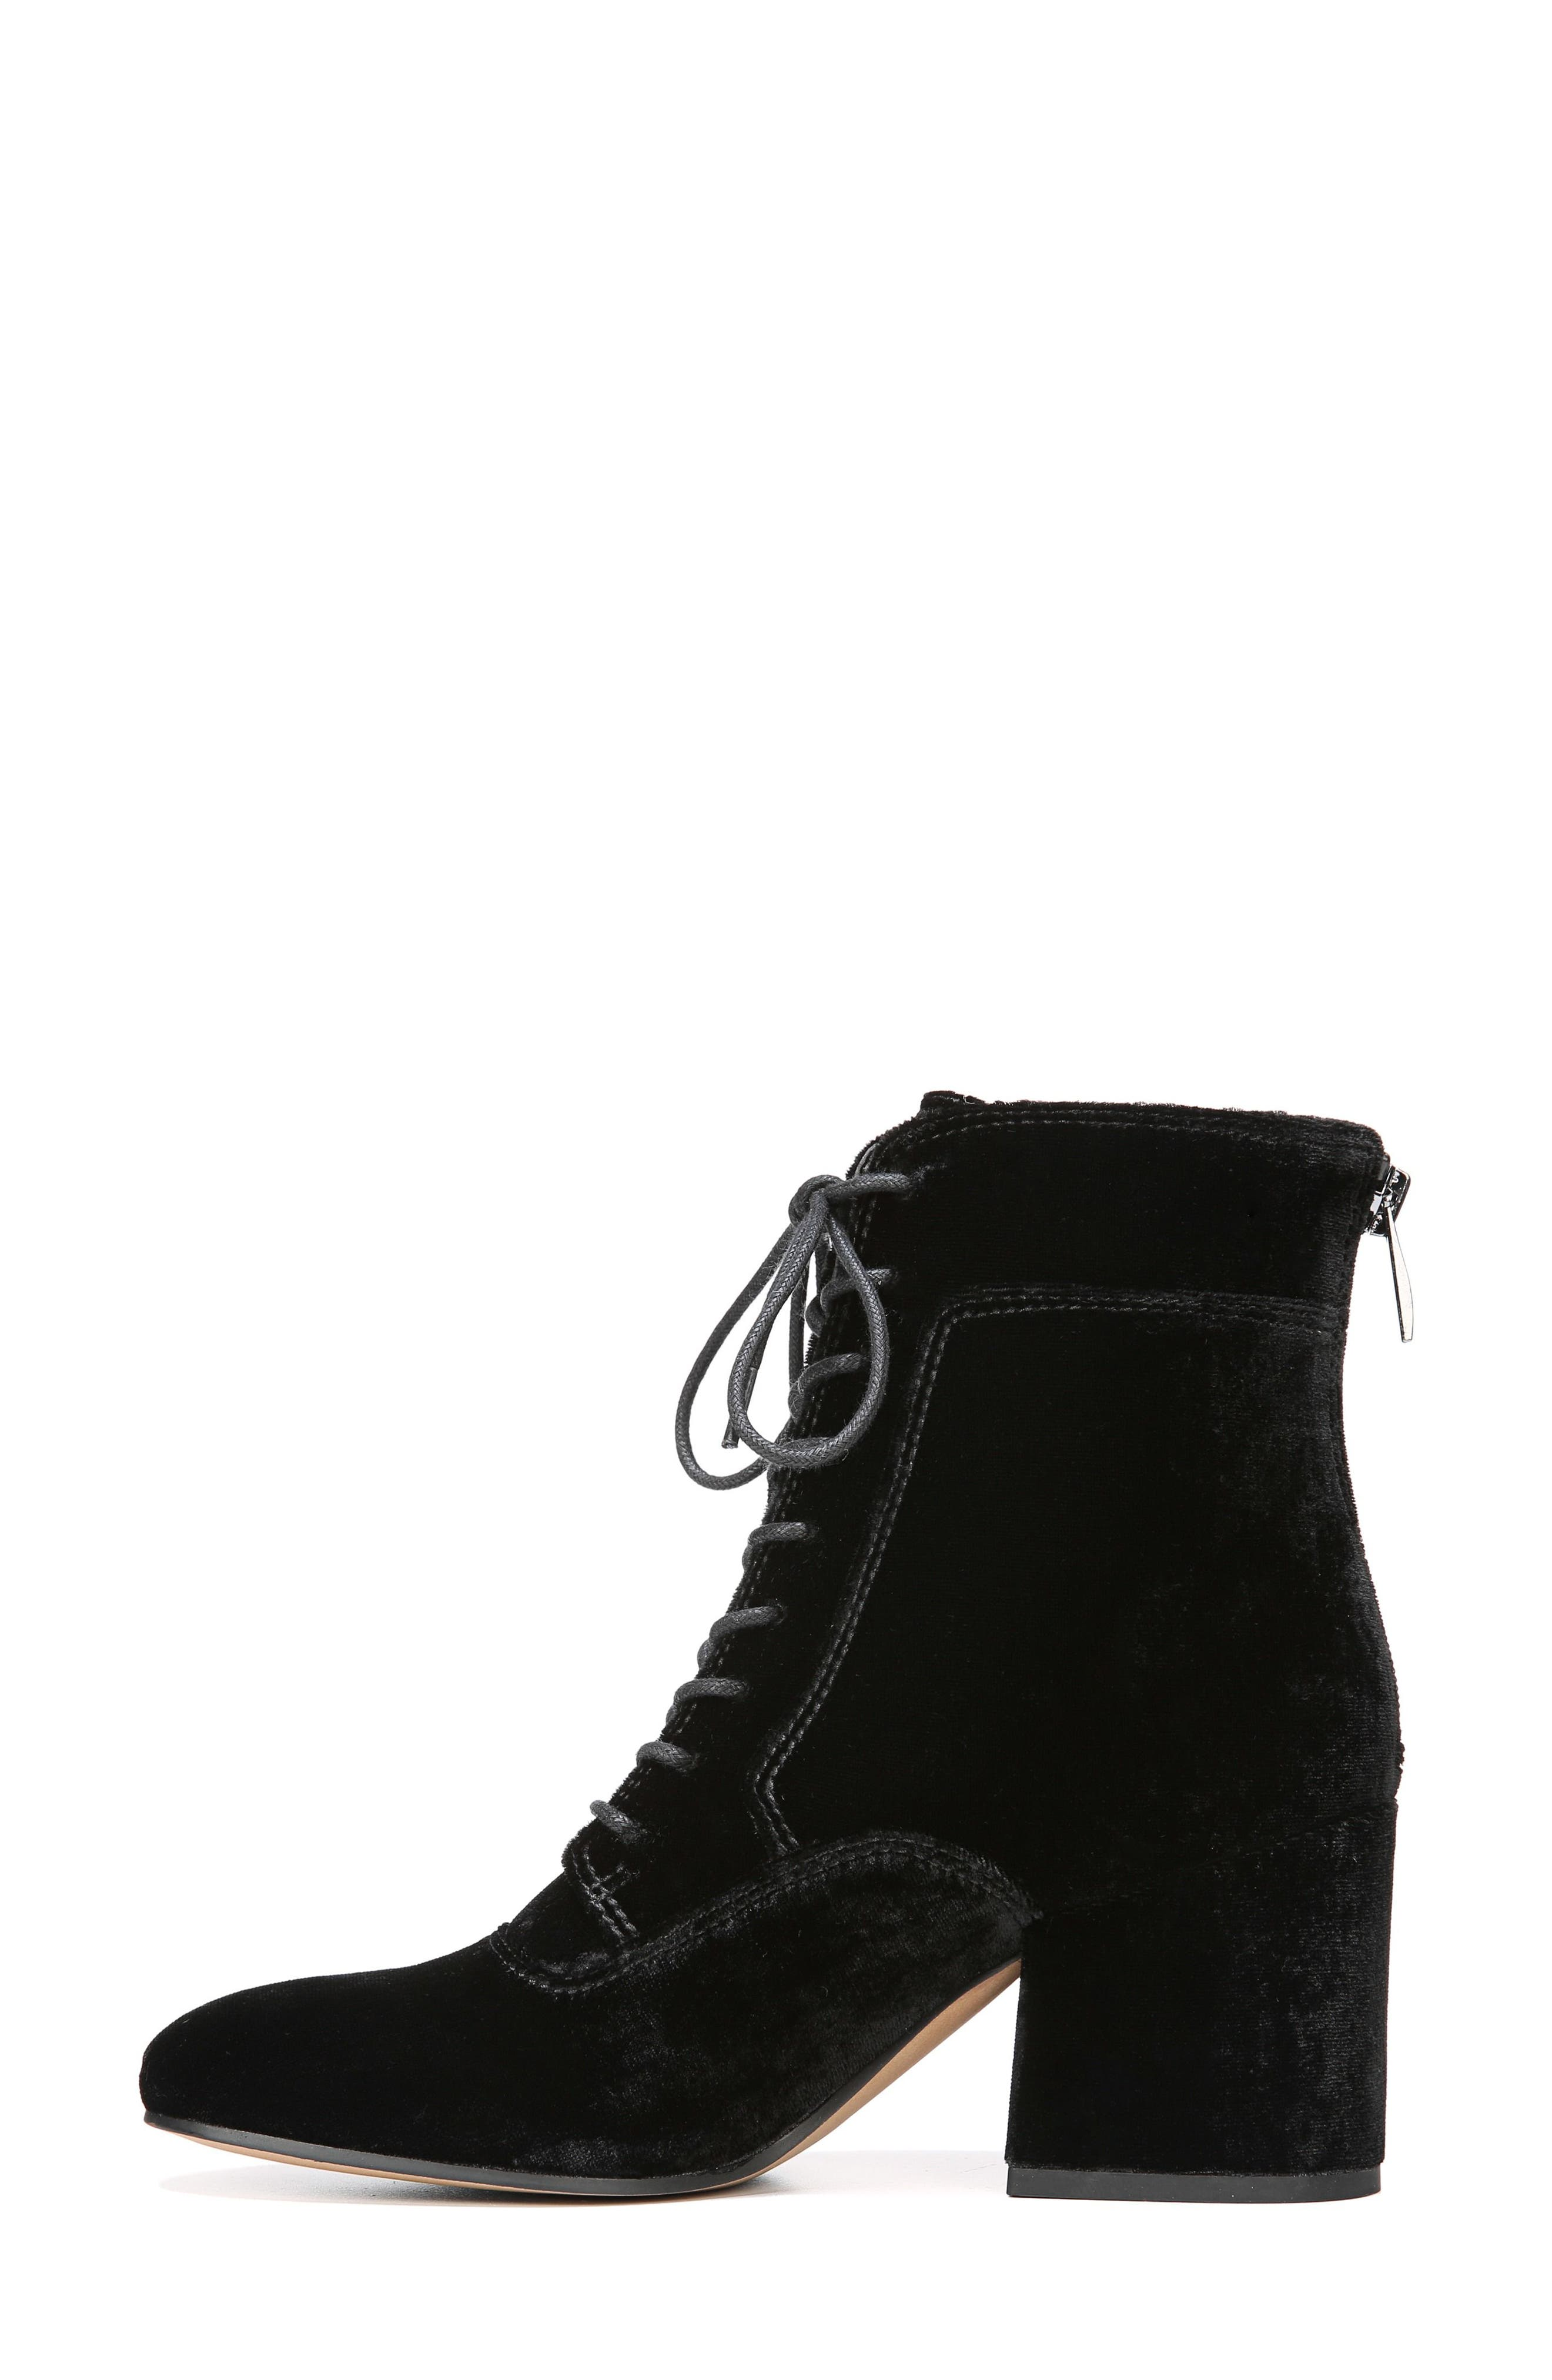 Aldrich Bootie,                             Alternate thumbnail 3, color,                             001